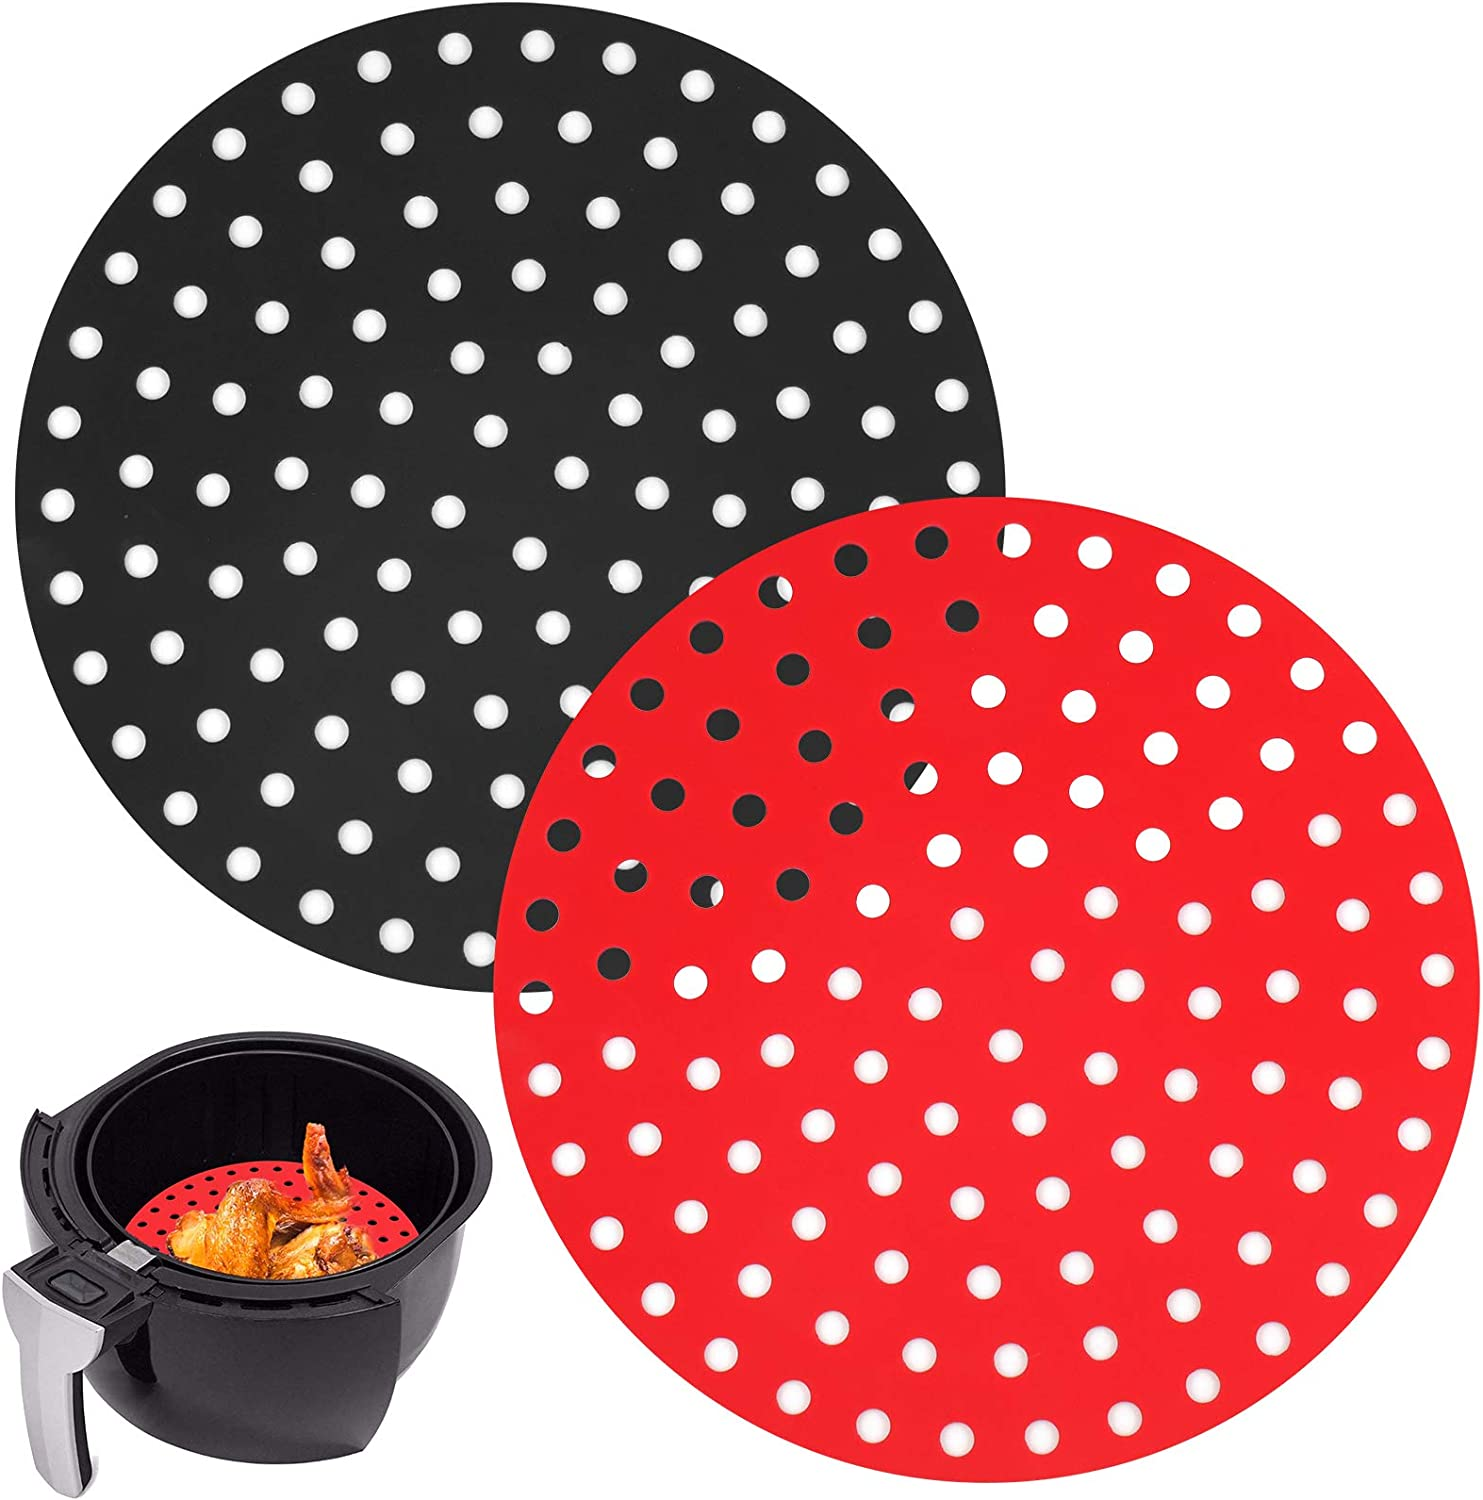 2 Pack Reusable Air Fryer Liners, 9 Inch Round Perforated Air Fryer Basket Silicone Mats, Non-Stick Air Fryer Accessories for 5.3 QT & Larger AirFryers/Oven/Pressure Cooker